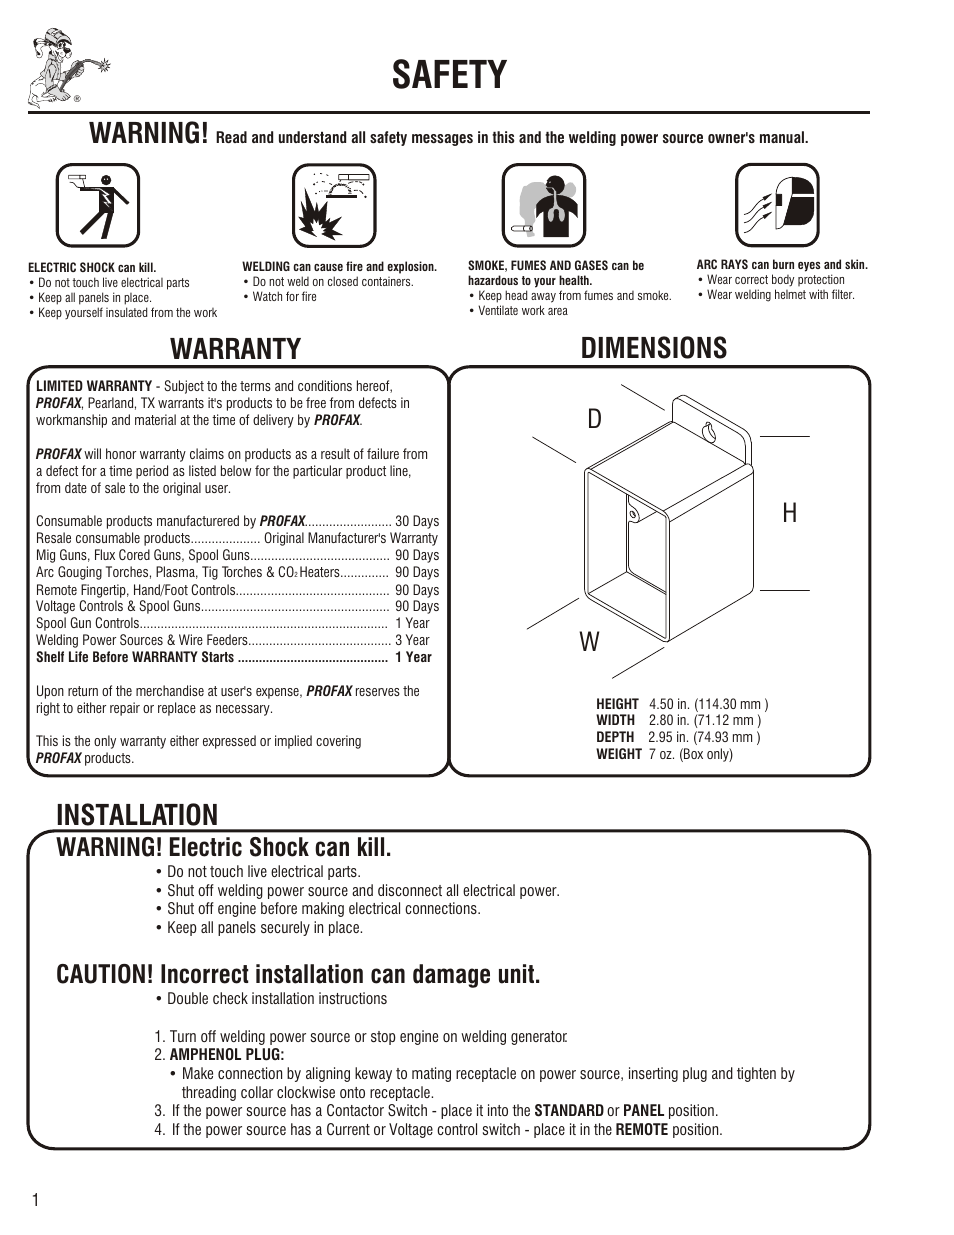 Shopmaster 300 Welder Wiring Diagram Miller Maxstar 200 Mig Safety Maintenance Warning Profax Mhc 14 User Manual Page 2